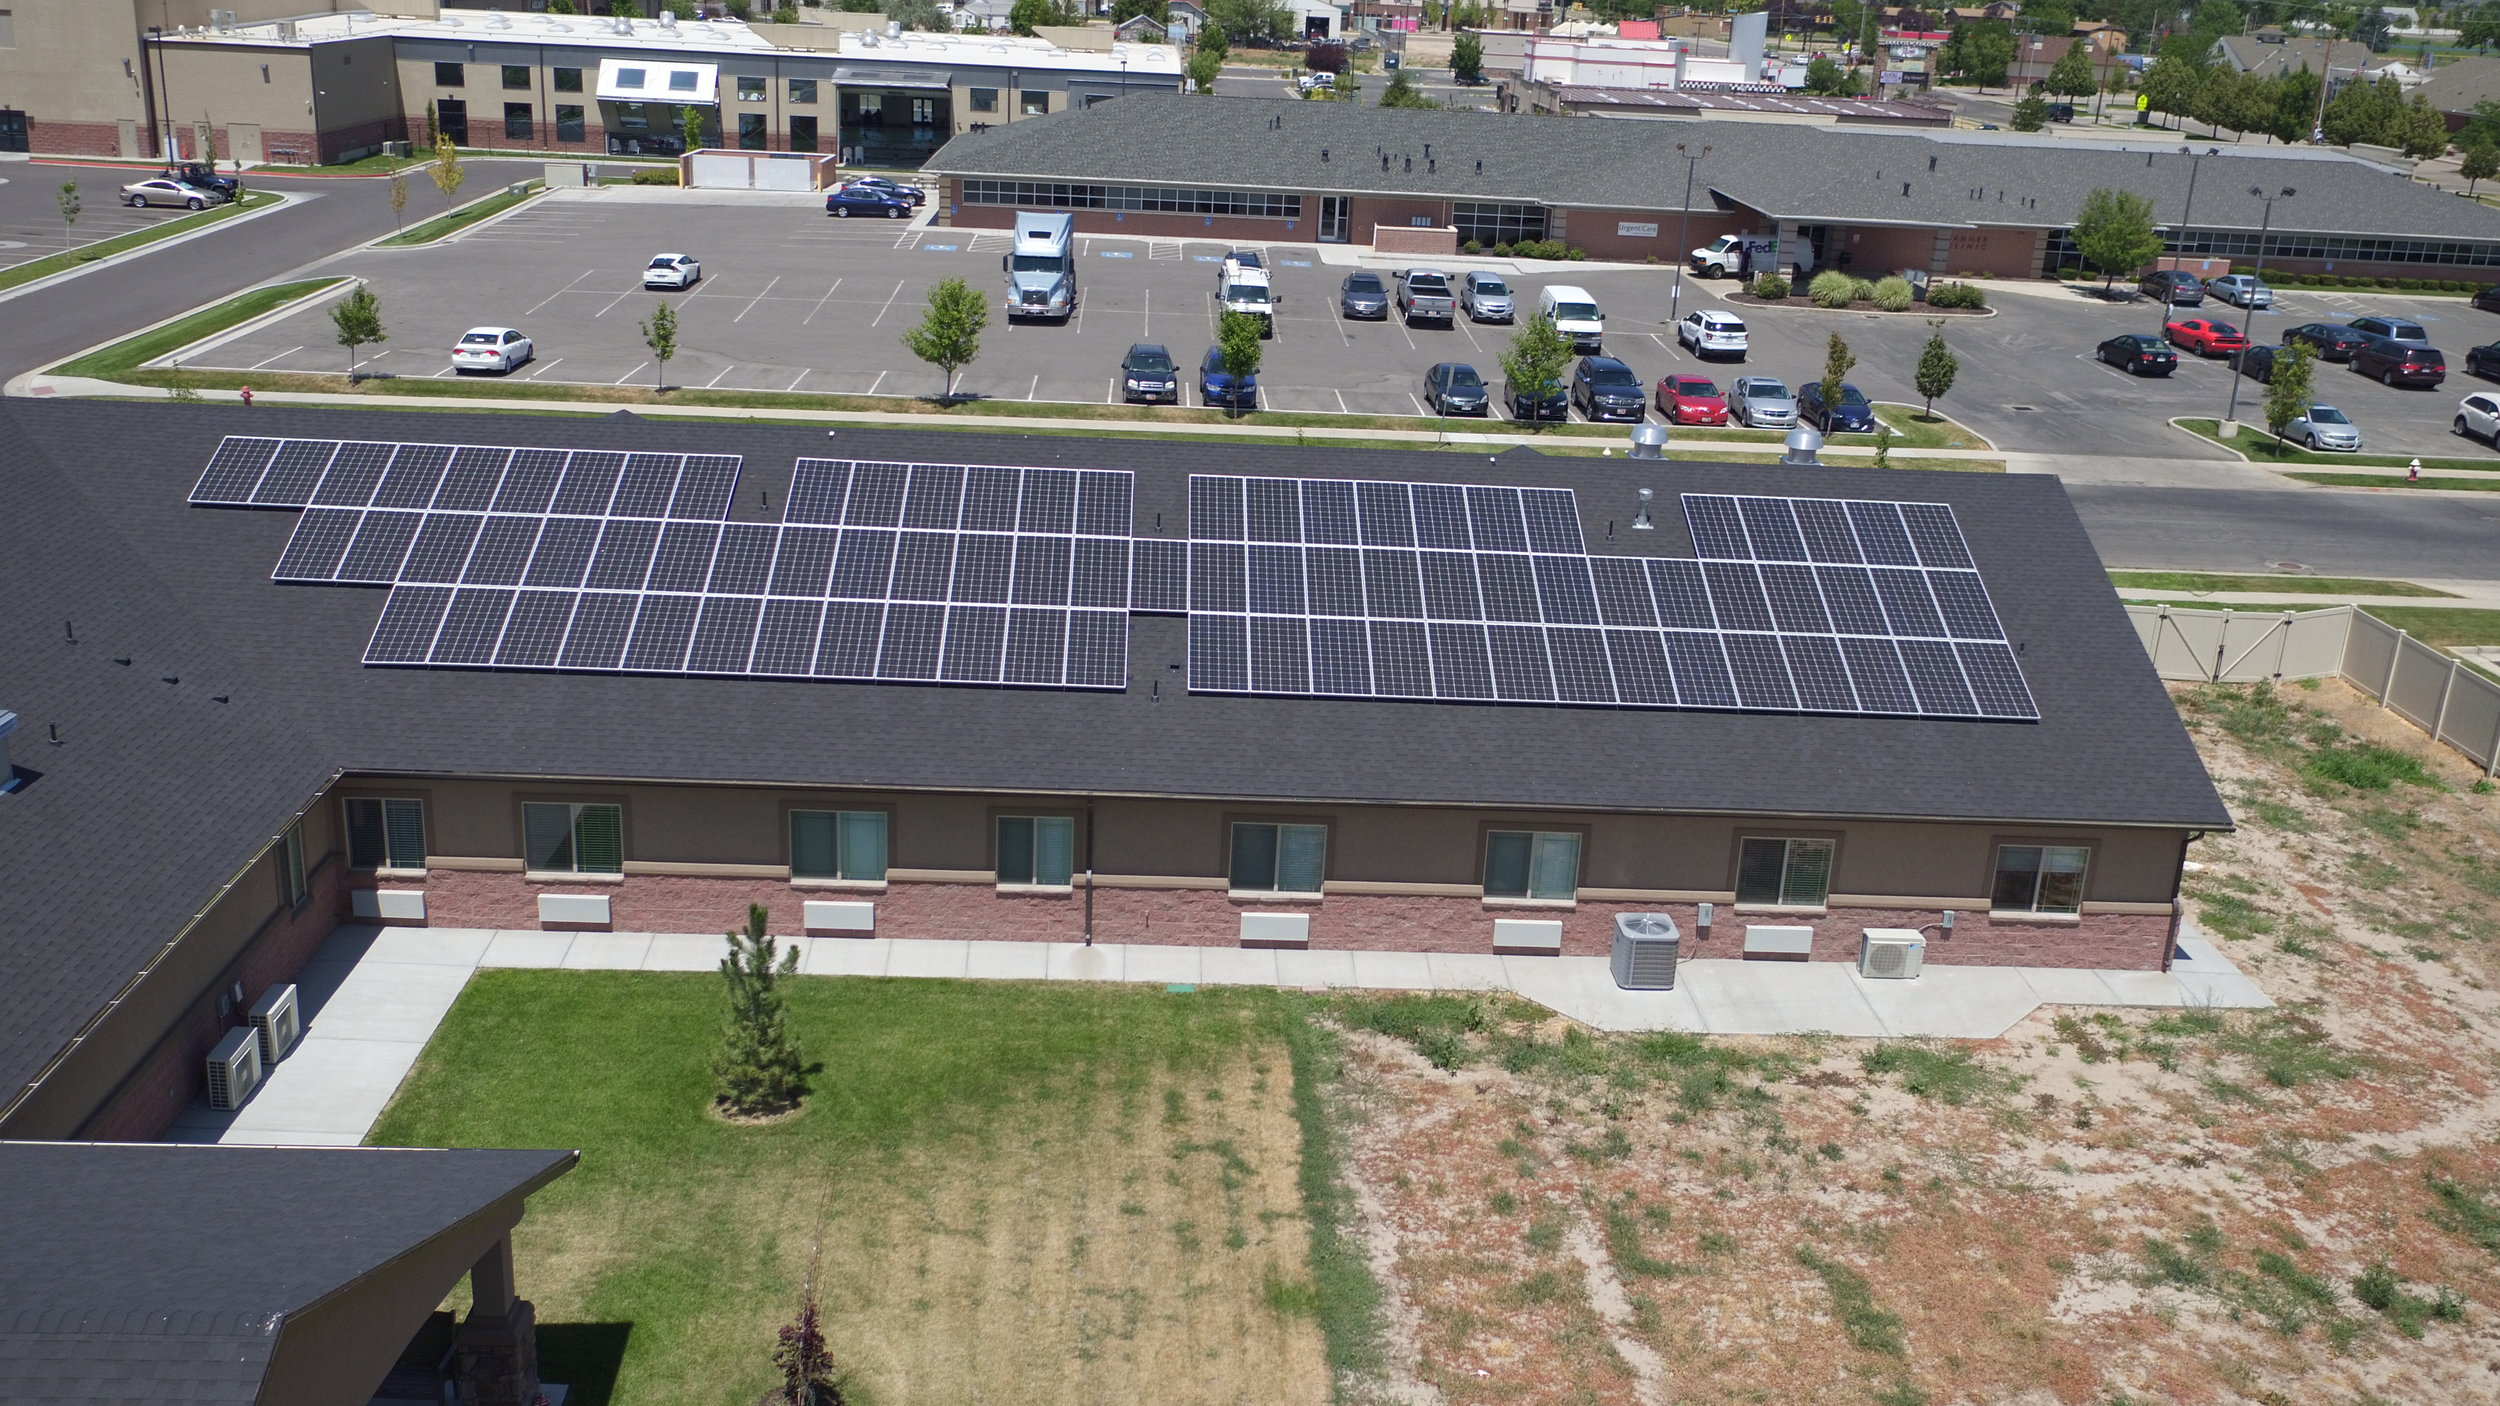 Raintree   111 panels installed 36kW generated per month  $606.16 saved per month